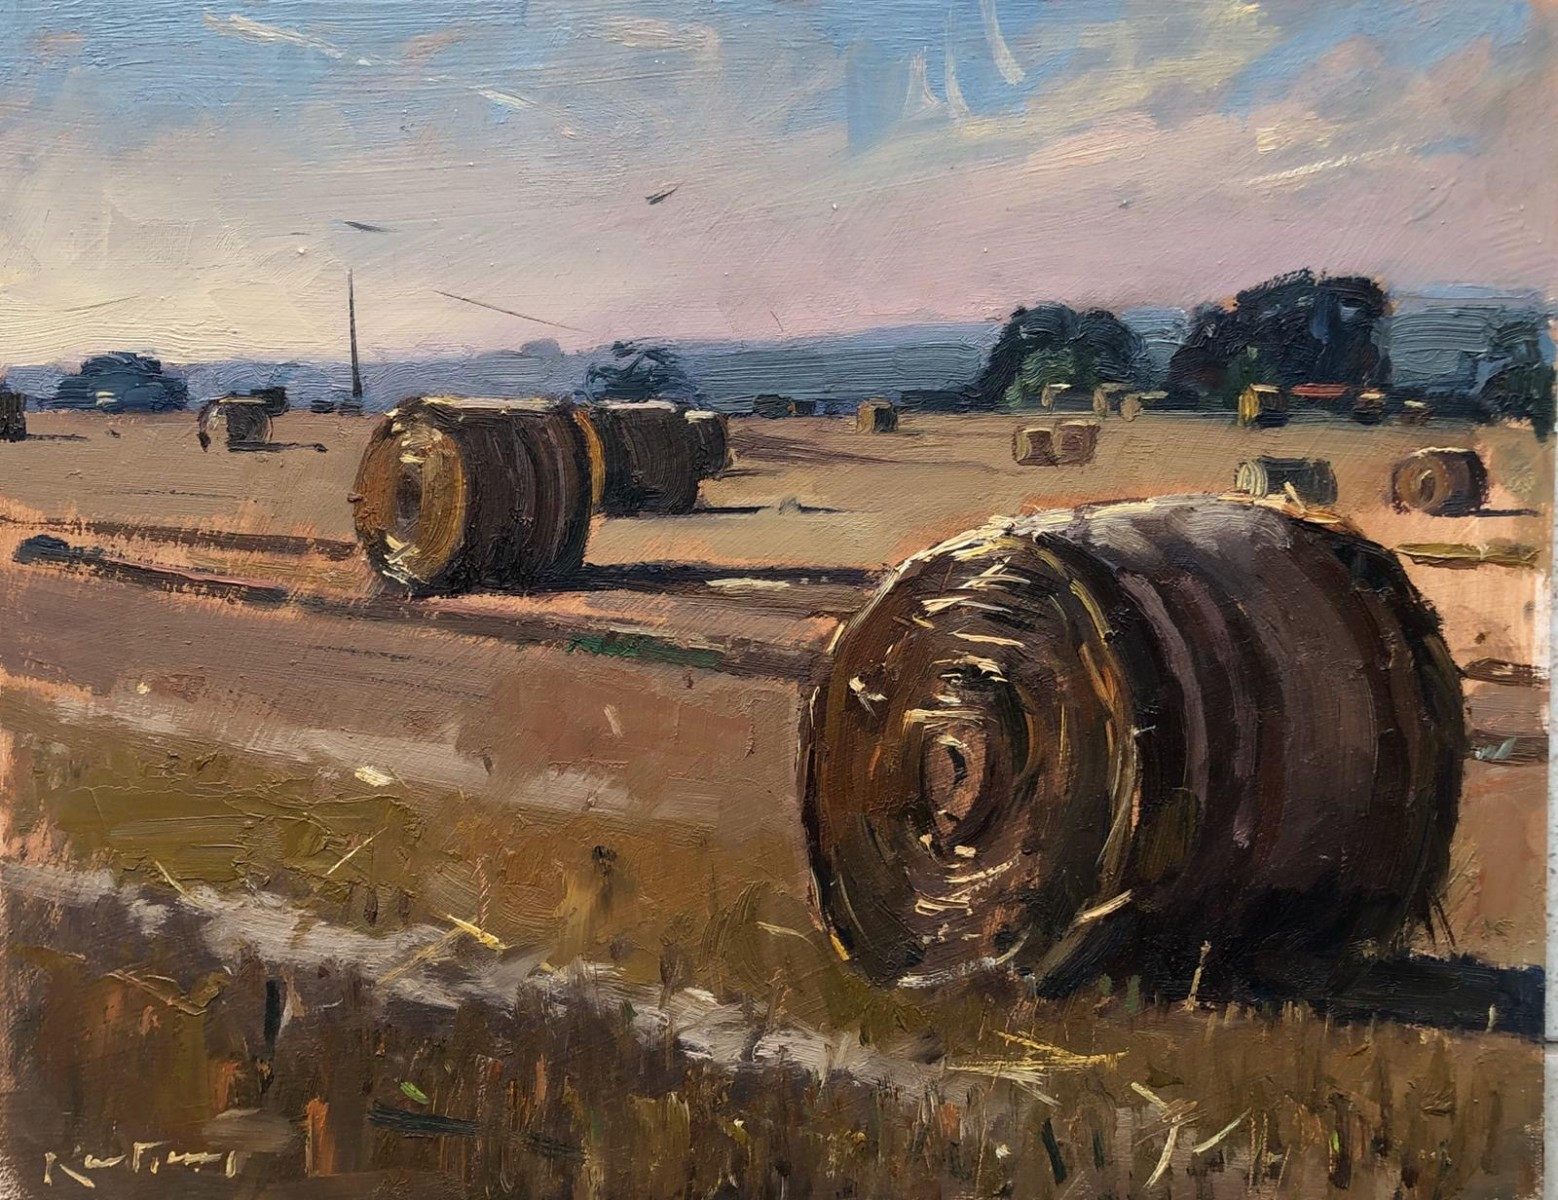 """KARL TERRY   26. HAY BALES   OIL ON BOARD   27 x 34 cm   £900<br /><a class=""""buy-button"""" href=""""mailto:info@dacre-art.com?subject=Website%20Enquiry"""">Enquire</a>"""